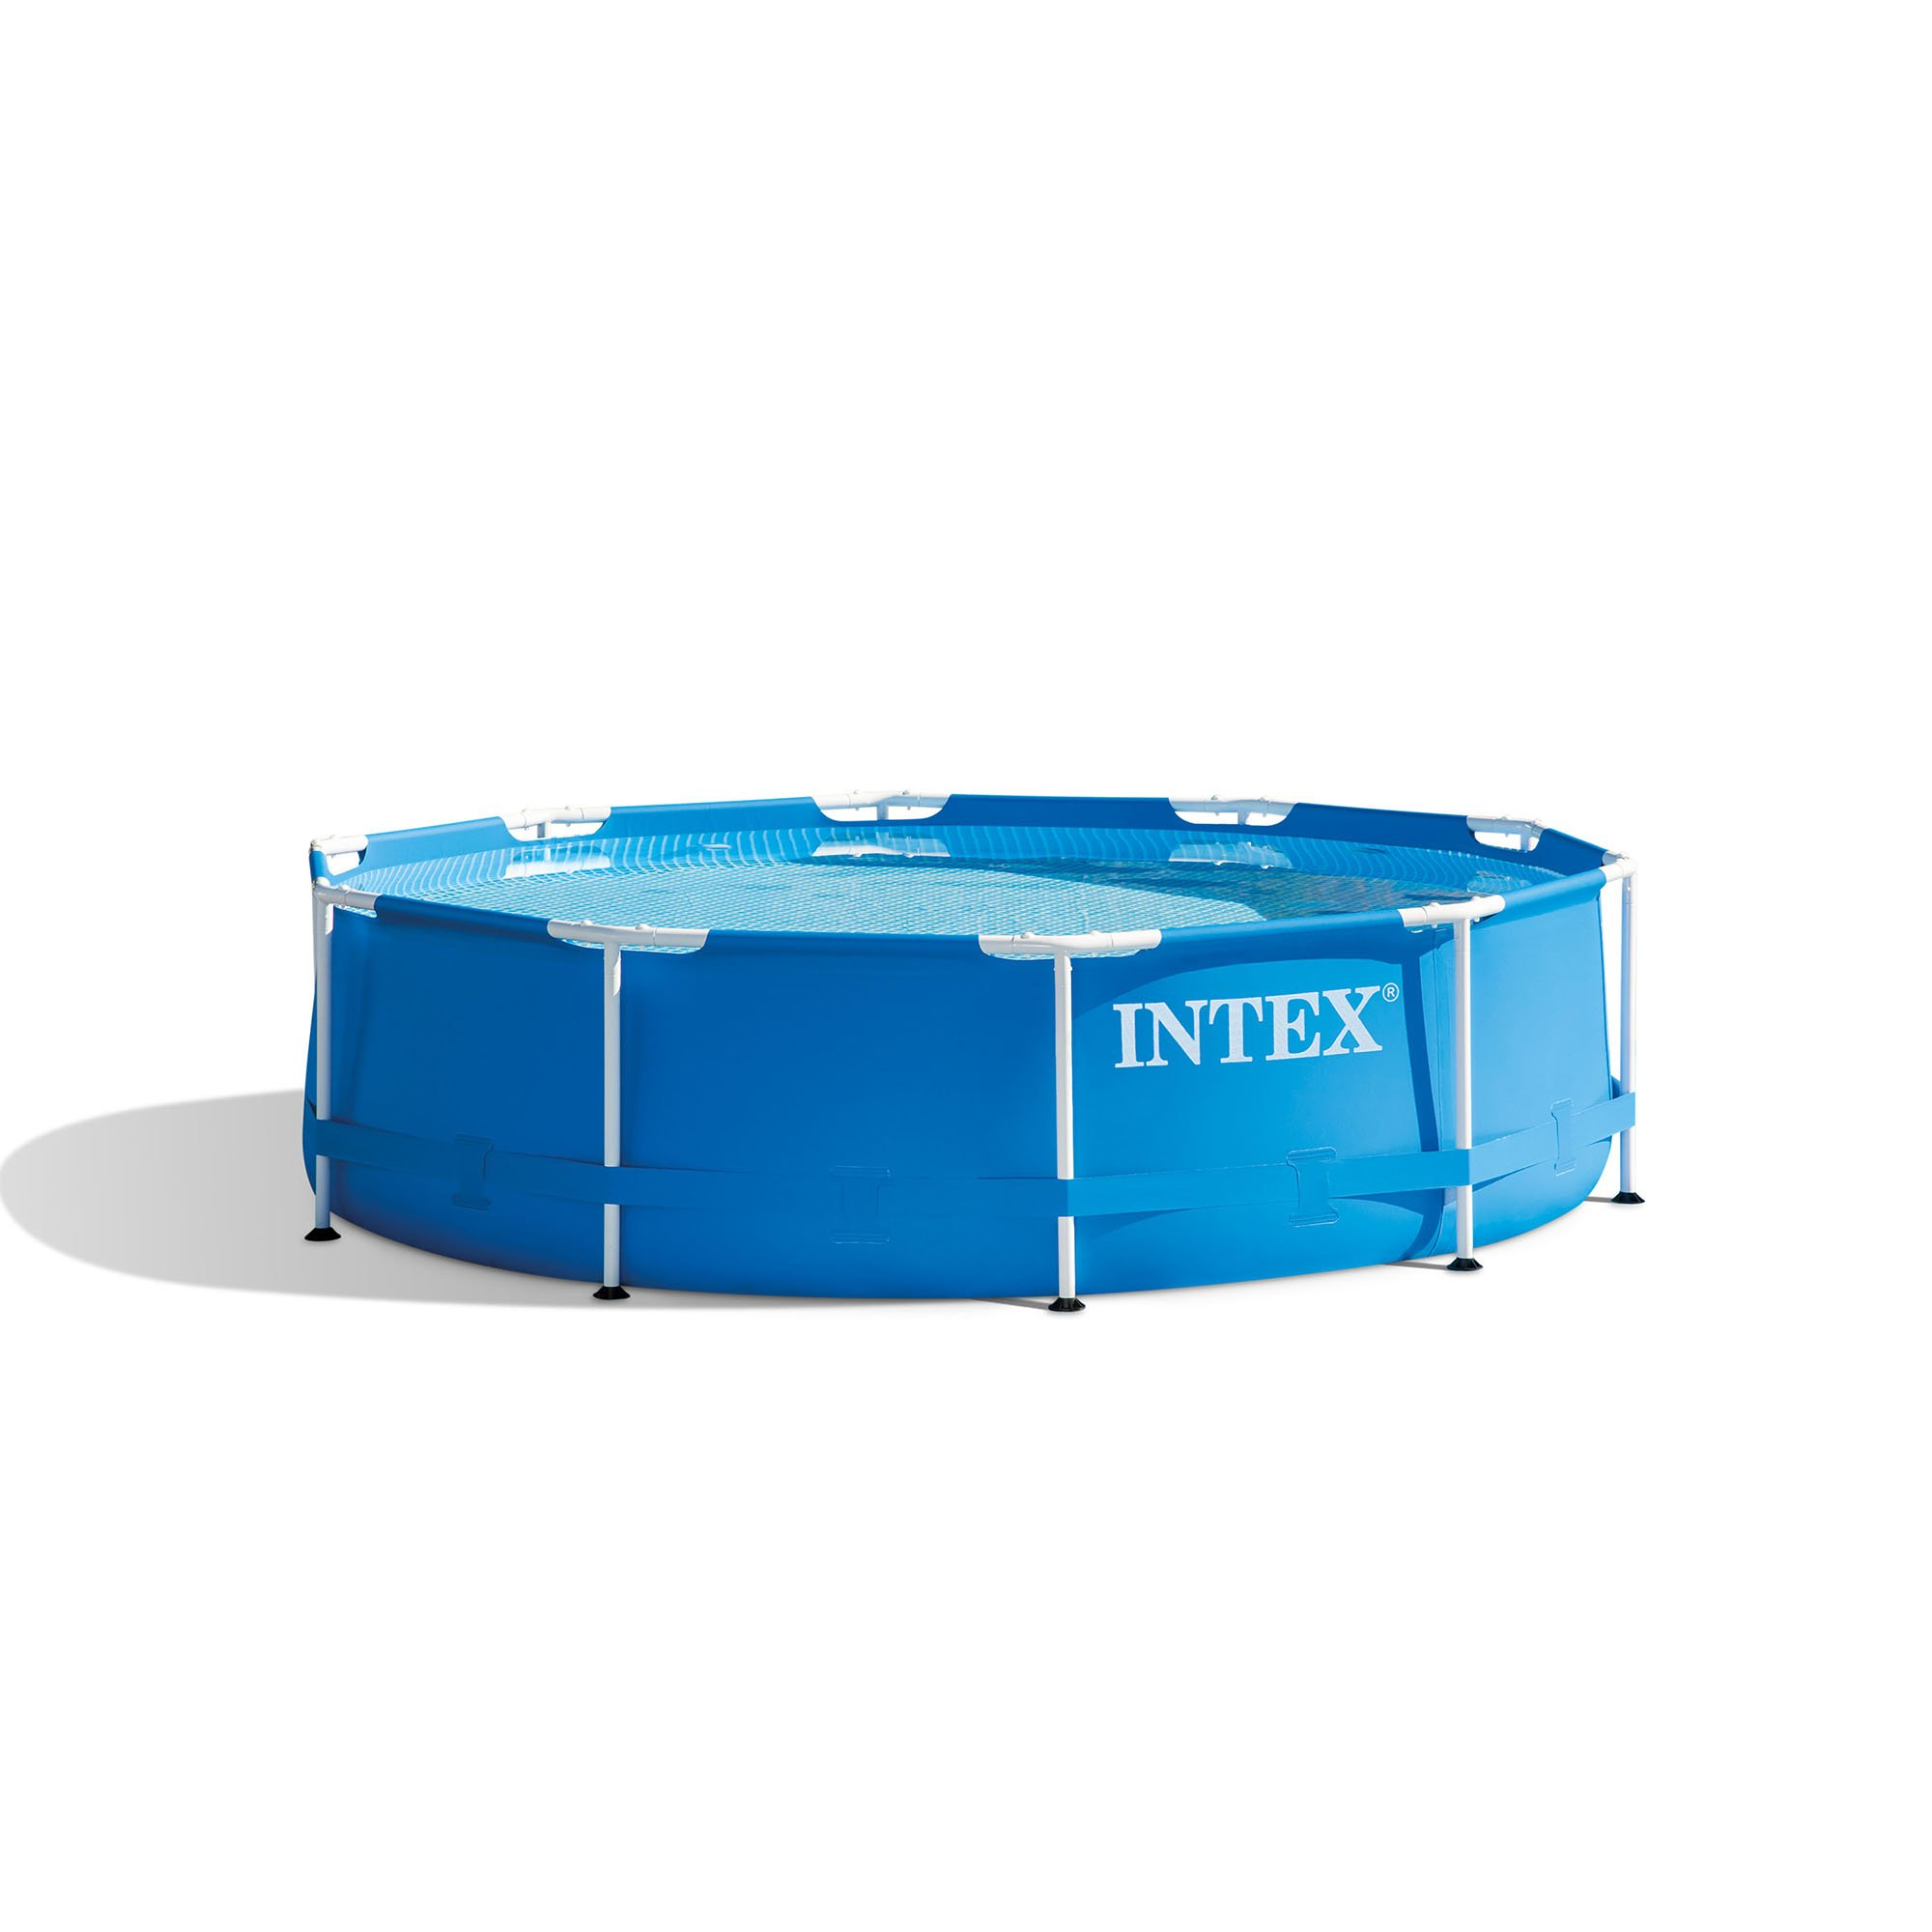 intex 10 39 x 30 metal frame swimming pool set with filter. Black Bedroom Furniture Sets. Home Design Ideas